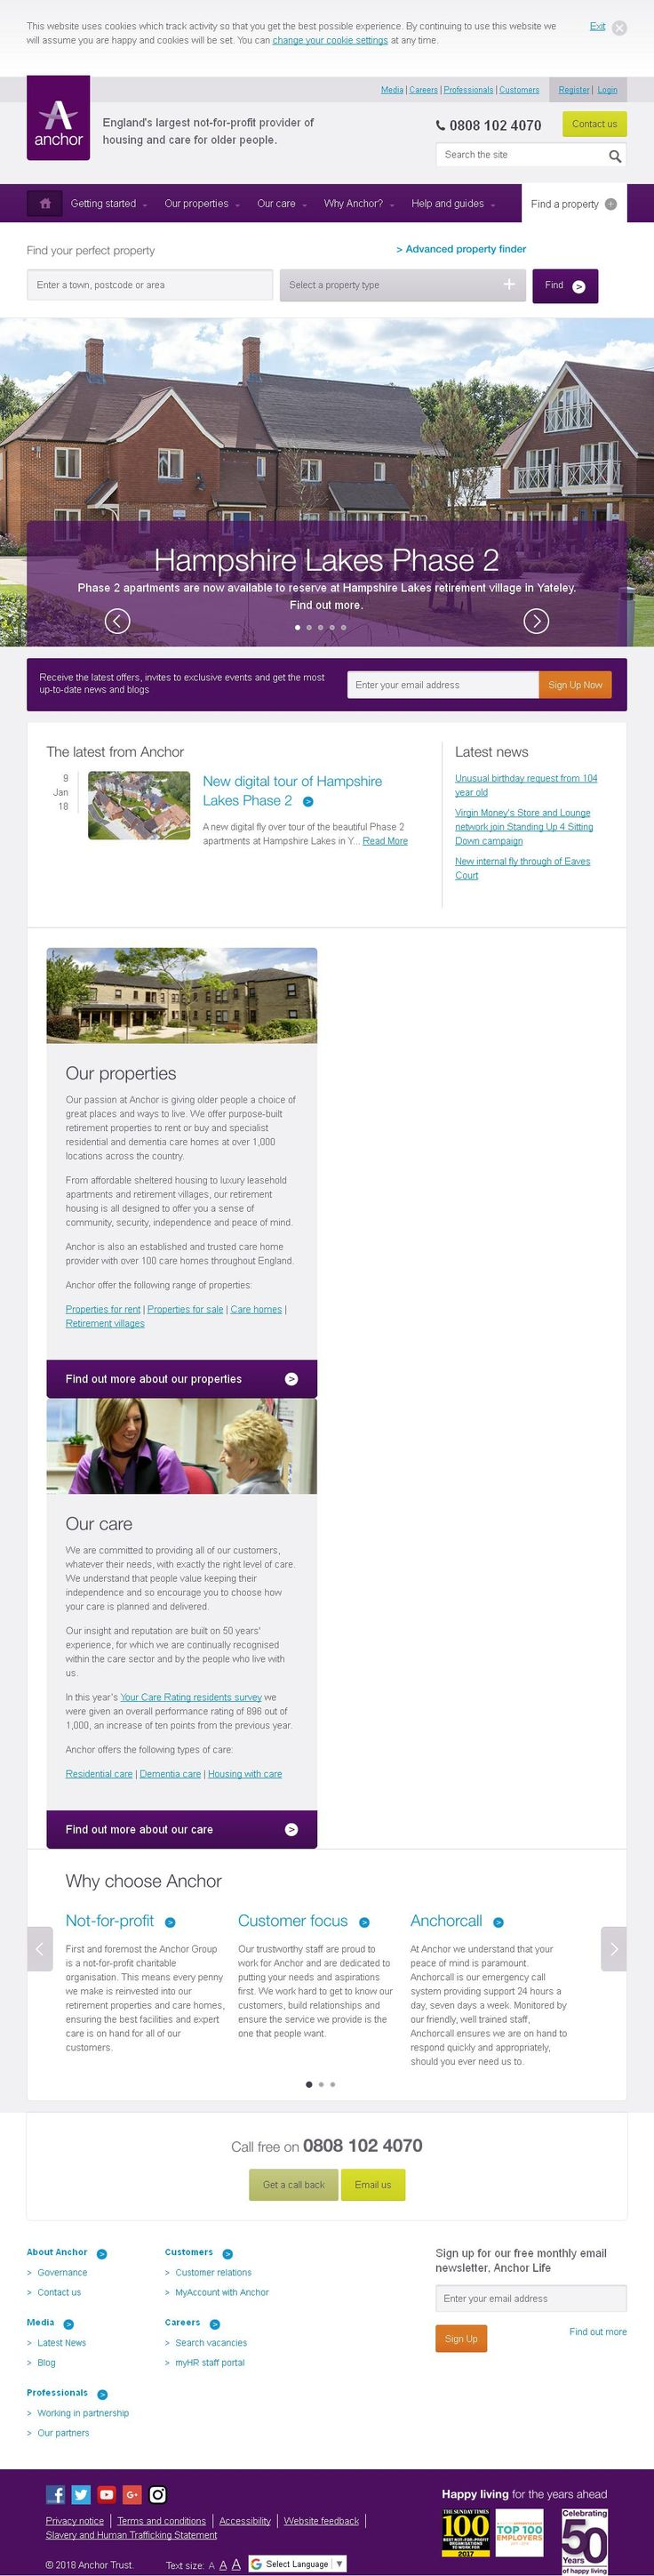 Anchor Trust Housing Associations Societies Trusts & Co-Operatives 210 Main Road  Biggin Hill Westerham Kent TN16 3BB | To get more infomration about Anchor Trust, Location Map, Phone numbers, Email, Website please visit http://www.HaiUK.co.uk